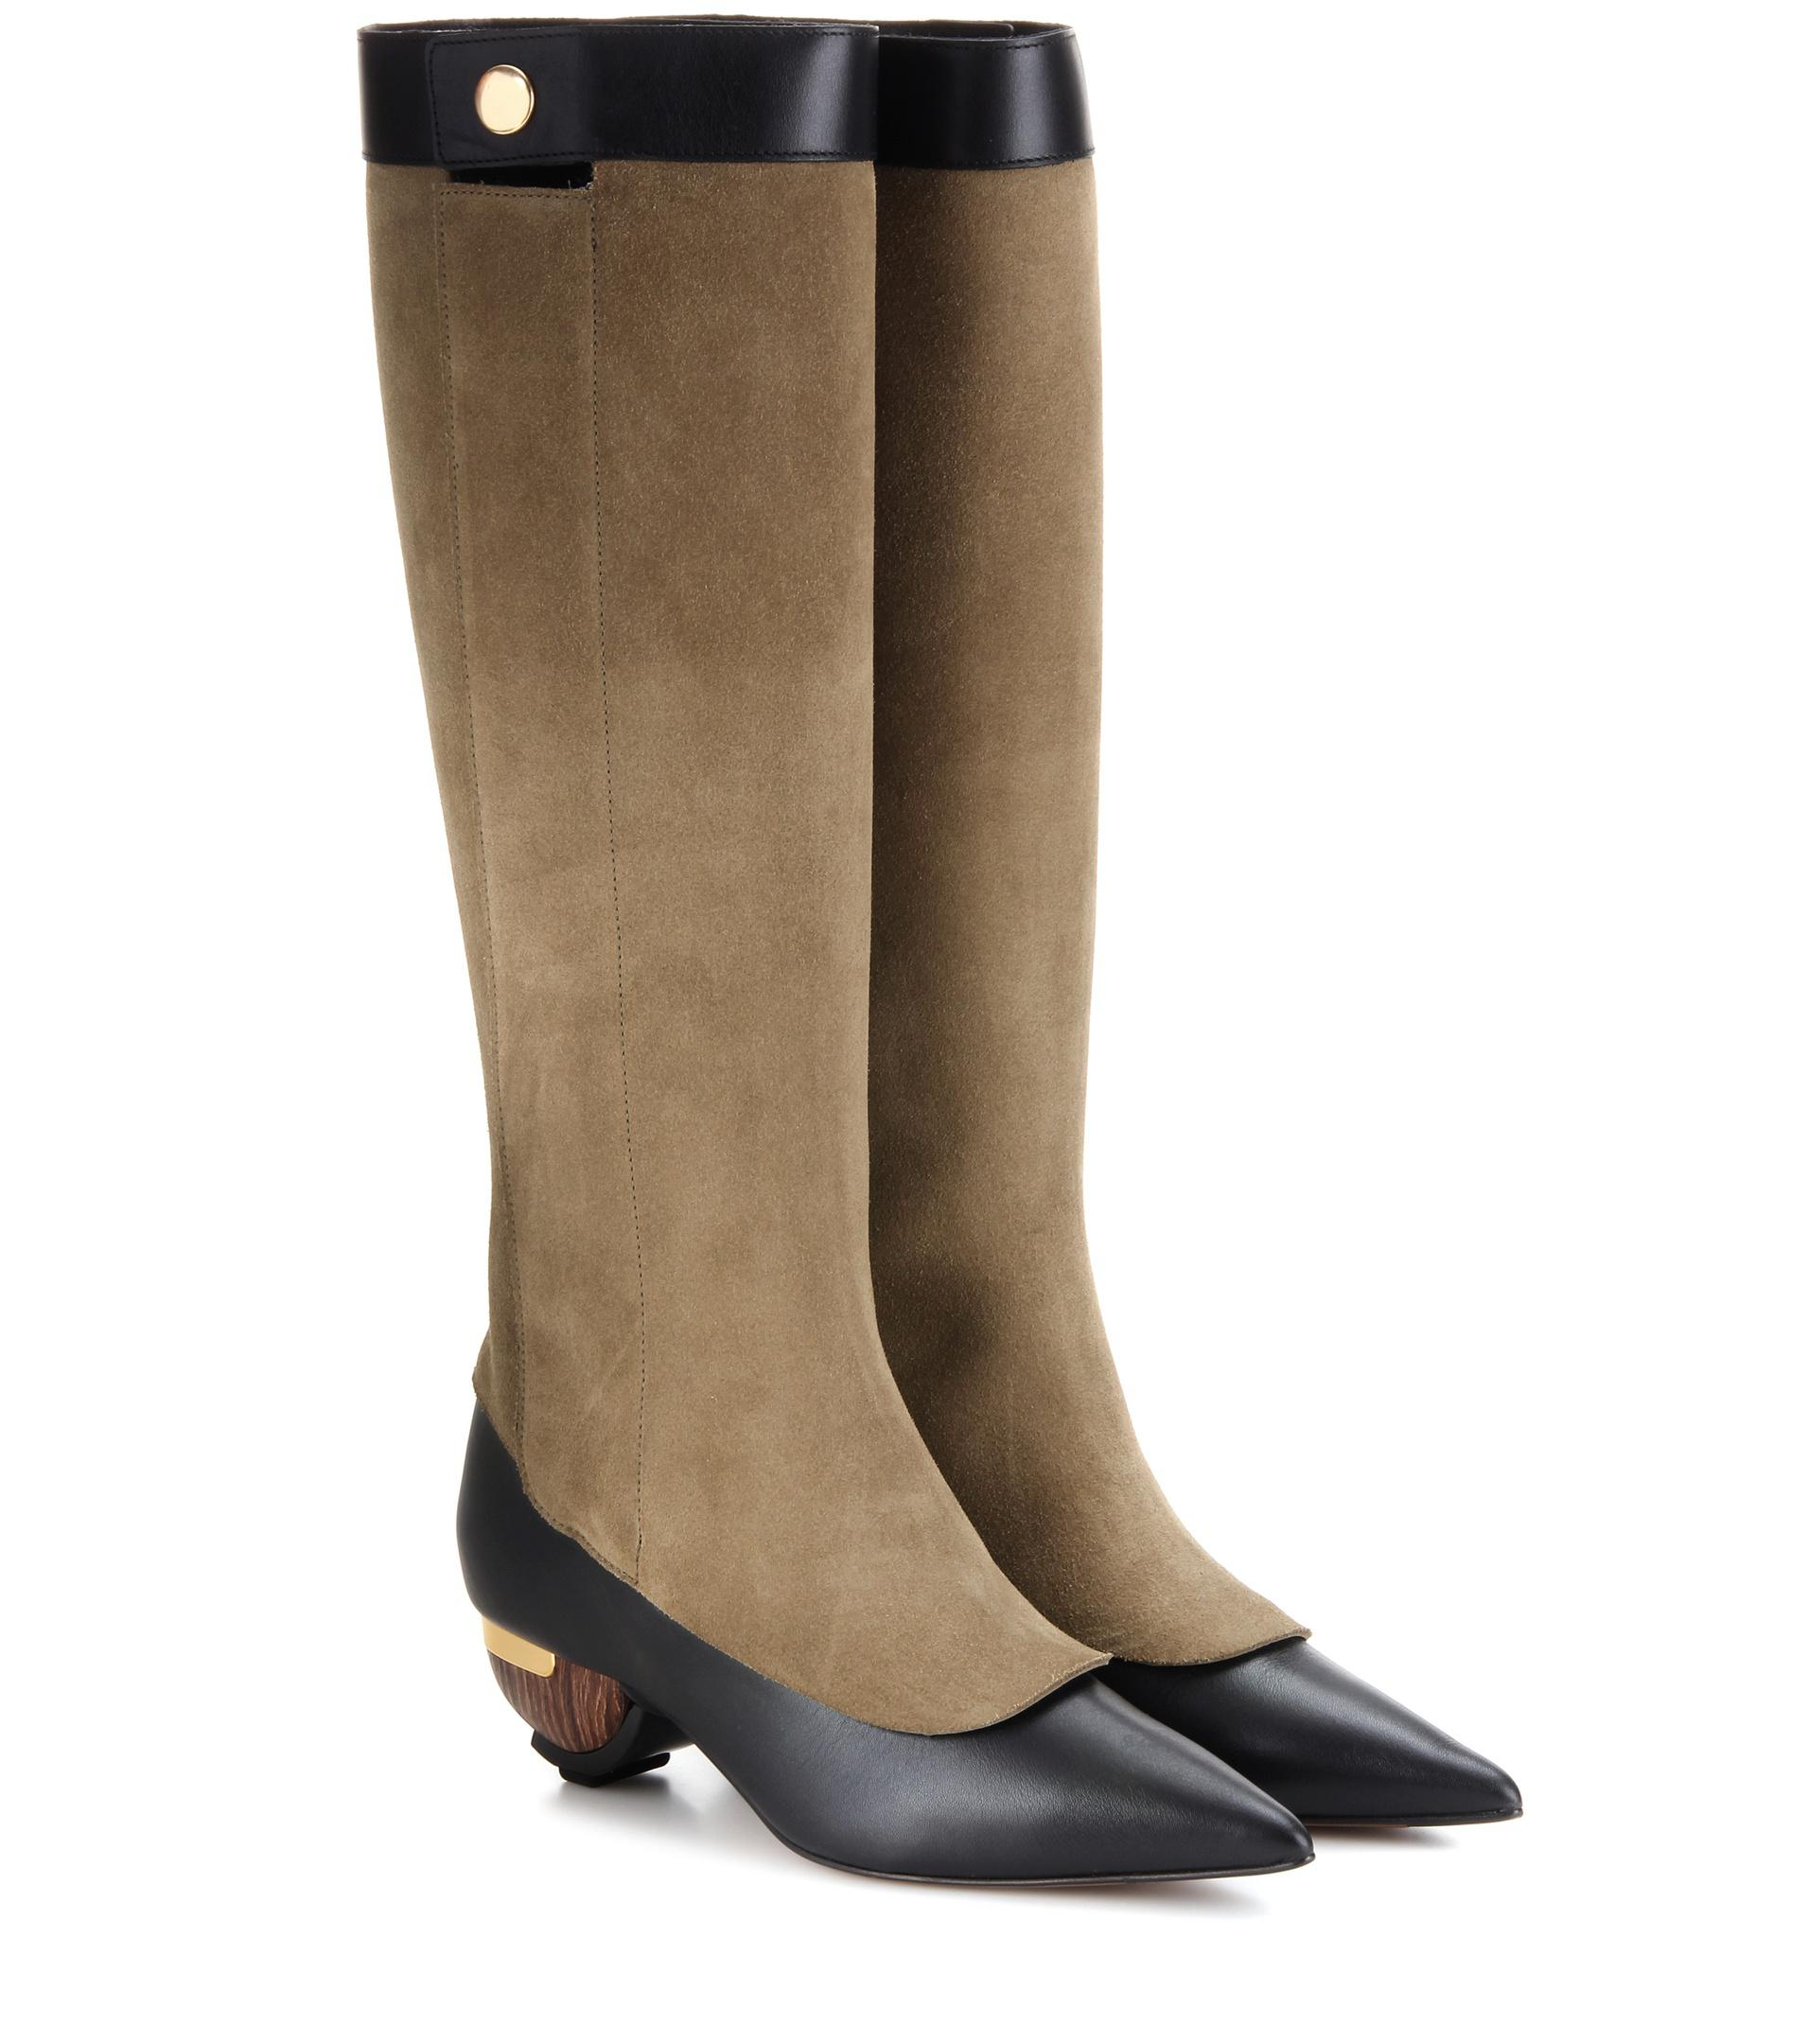 Marni Leather Knee-High Boots free shipping top quality discount visit new TYqXVpxxrN